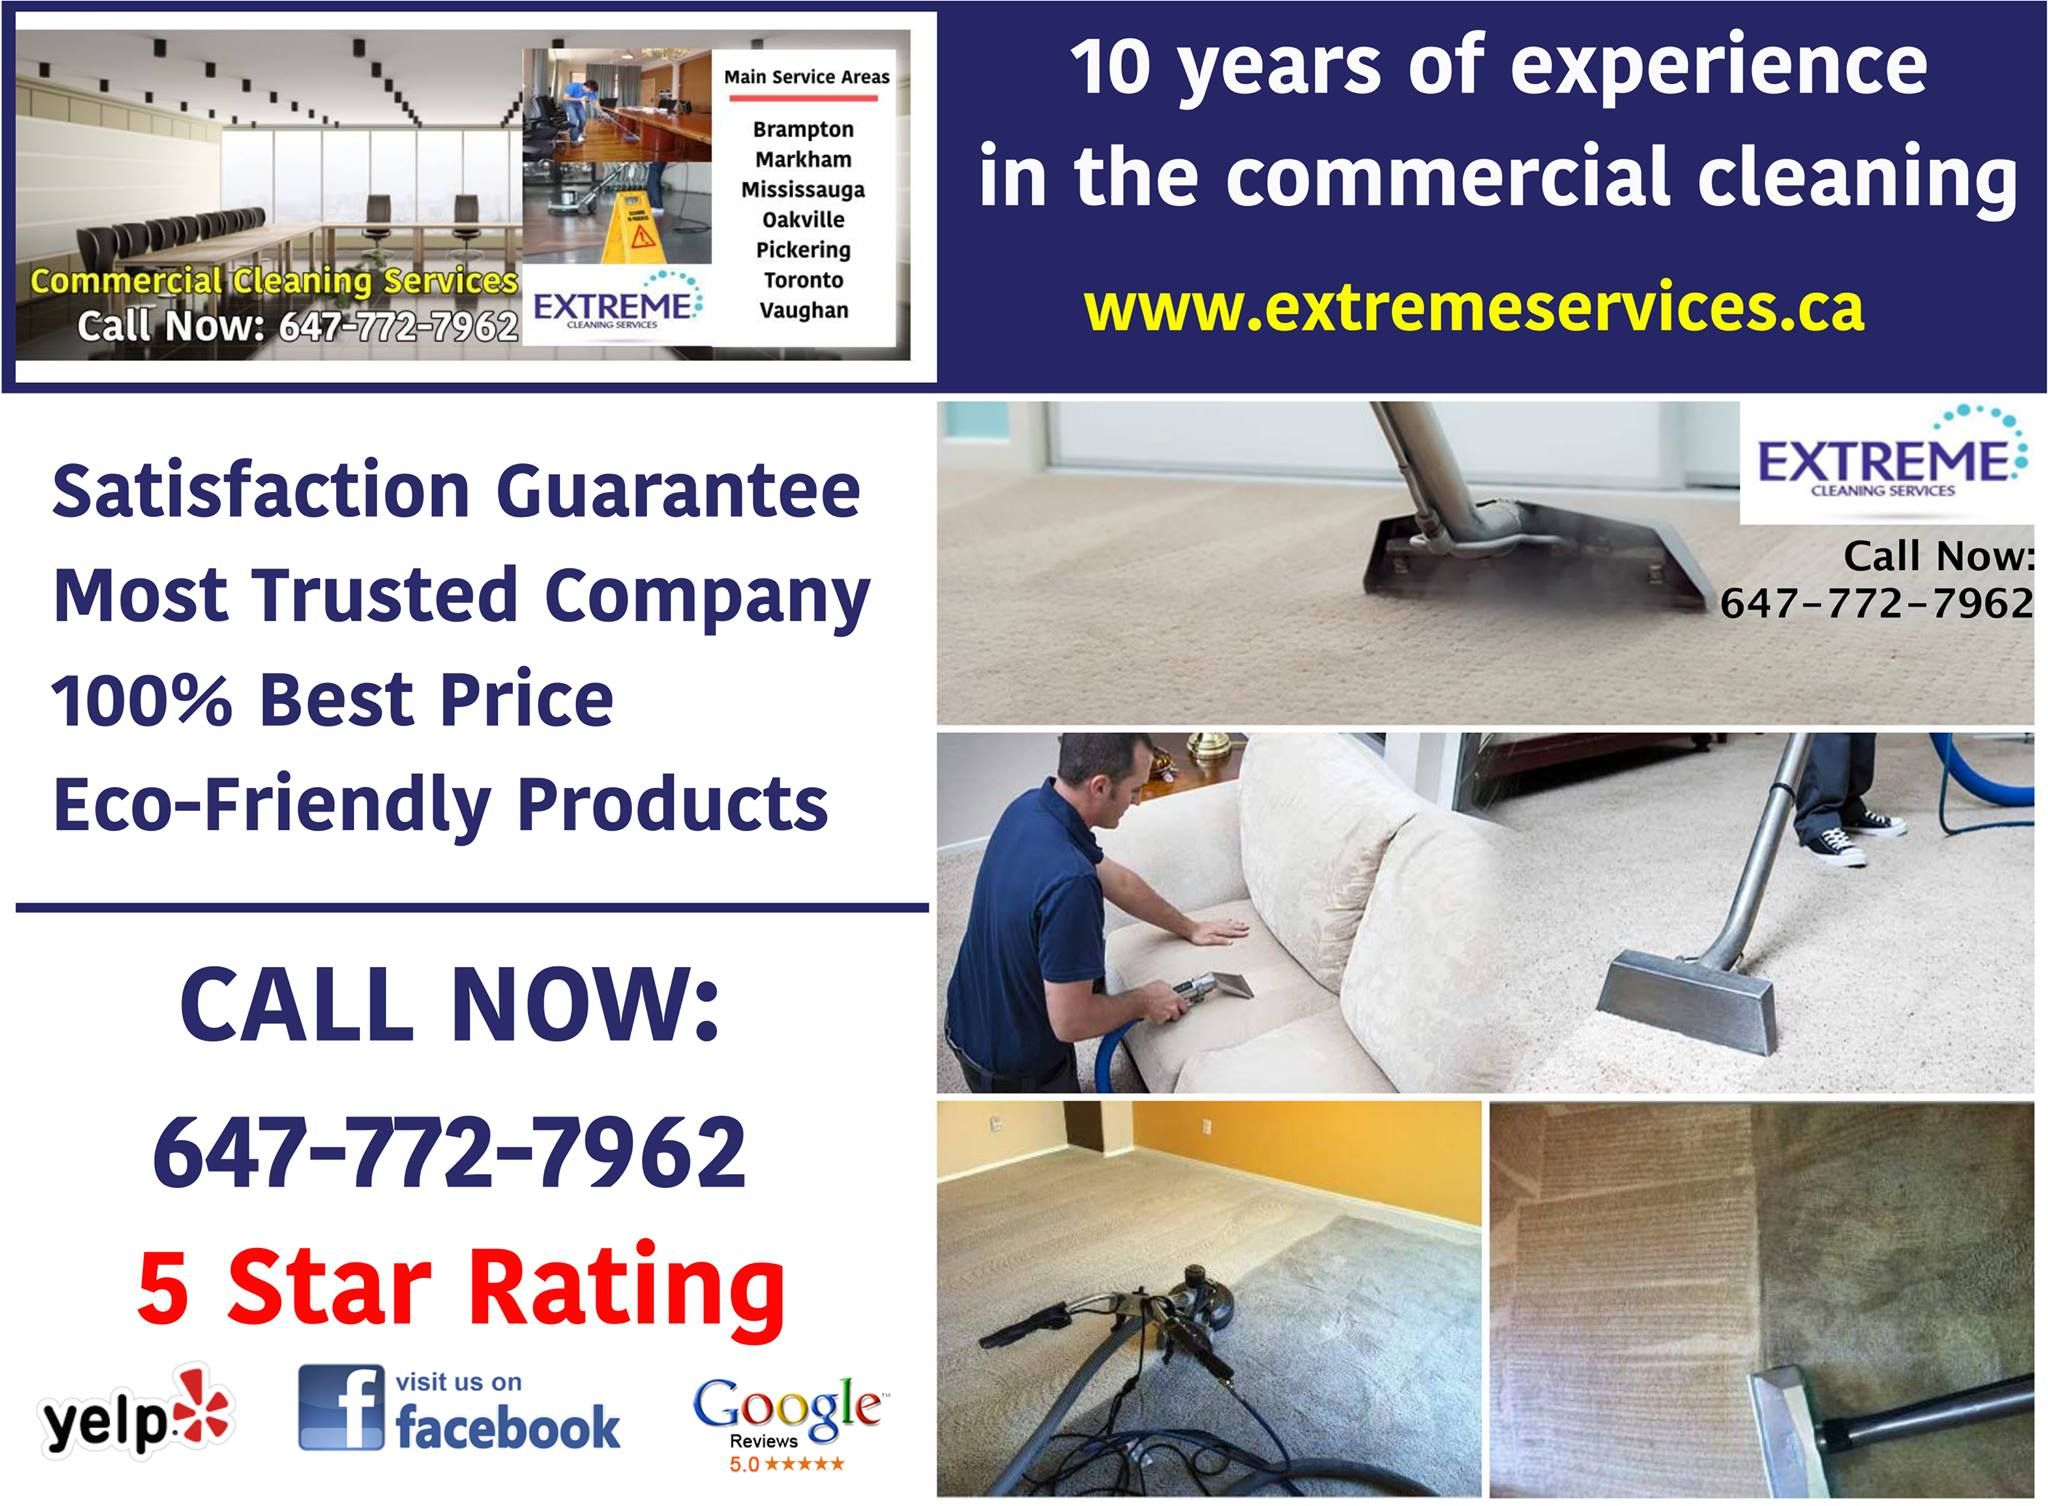 Extreme cleaning services is one of torontos top cleaning